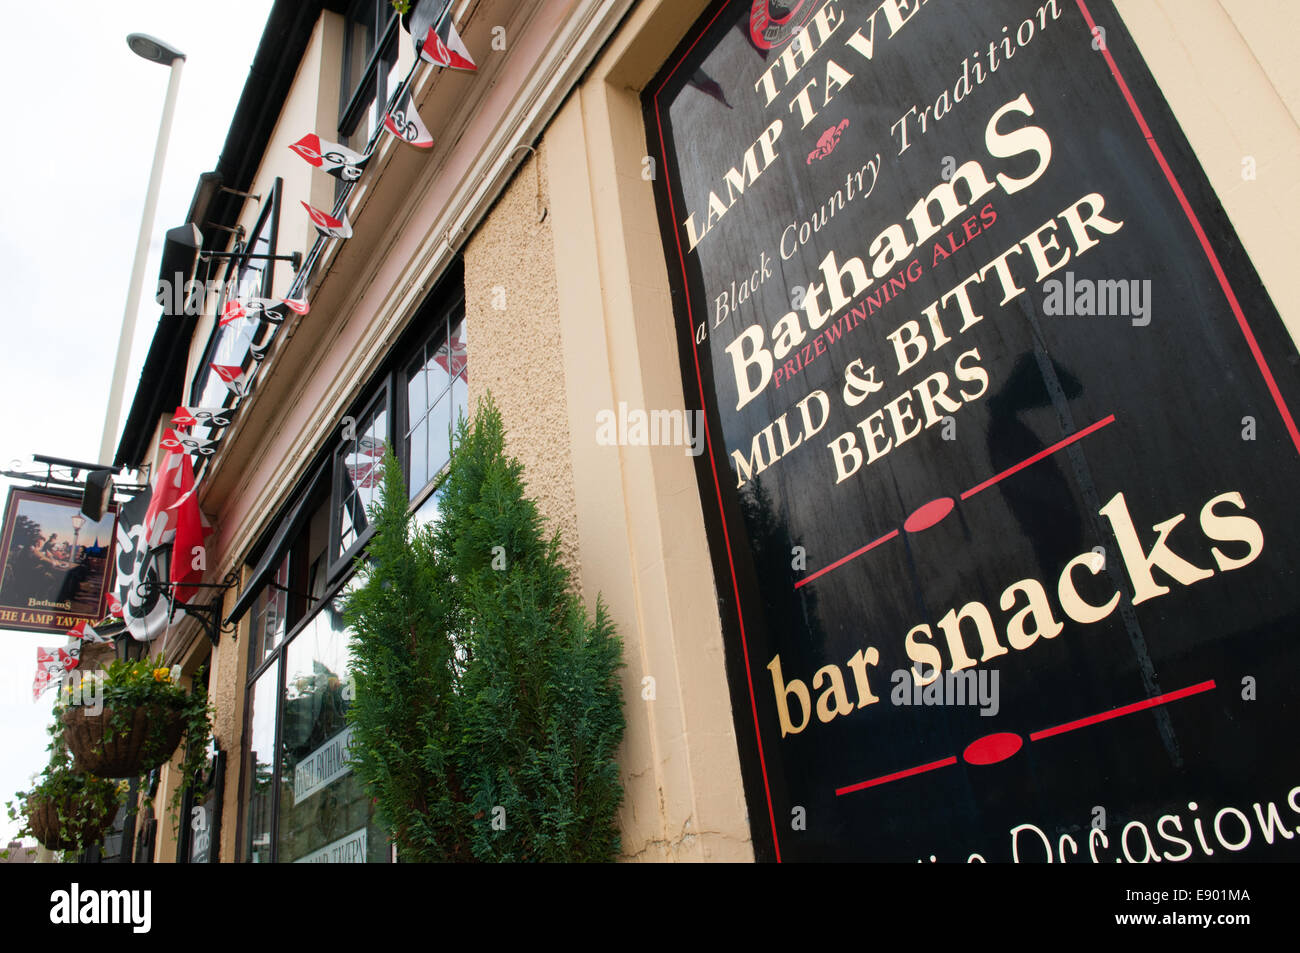 Front of the Lamp Tavern pub in Dudley one of the Bathams Brewery traditional pubs with the Black Country flag flying - Stock Image